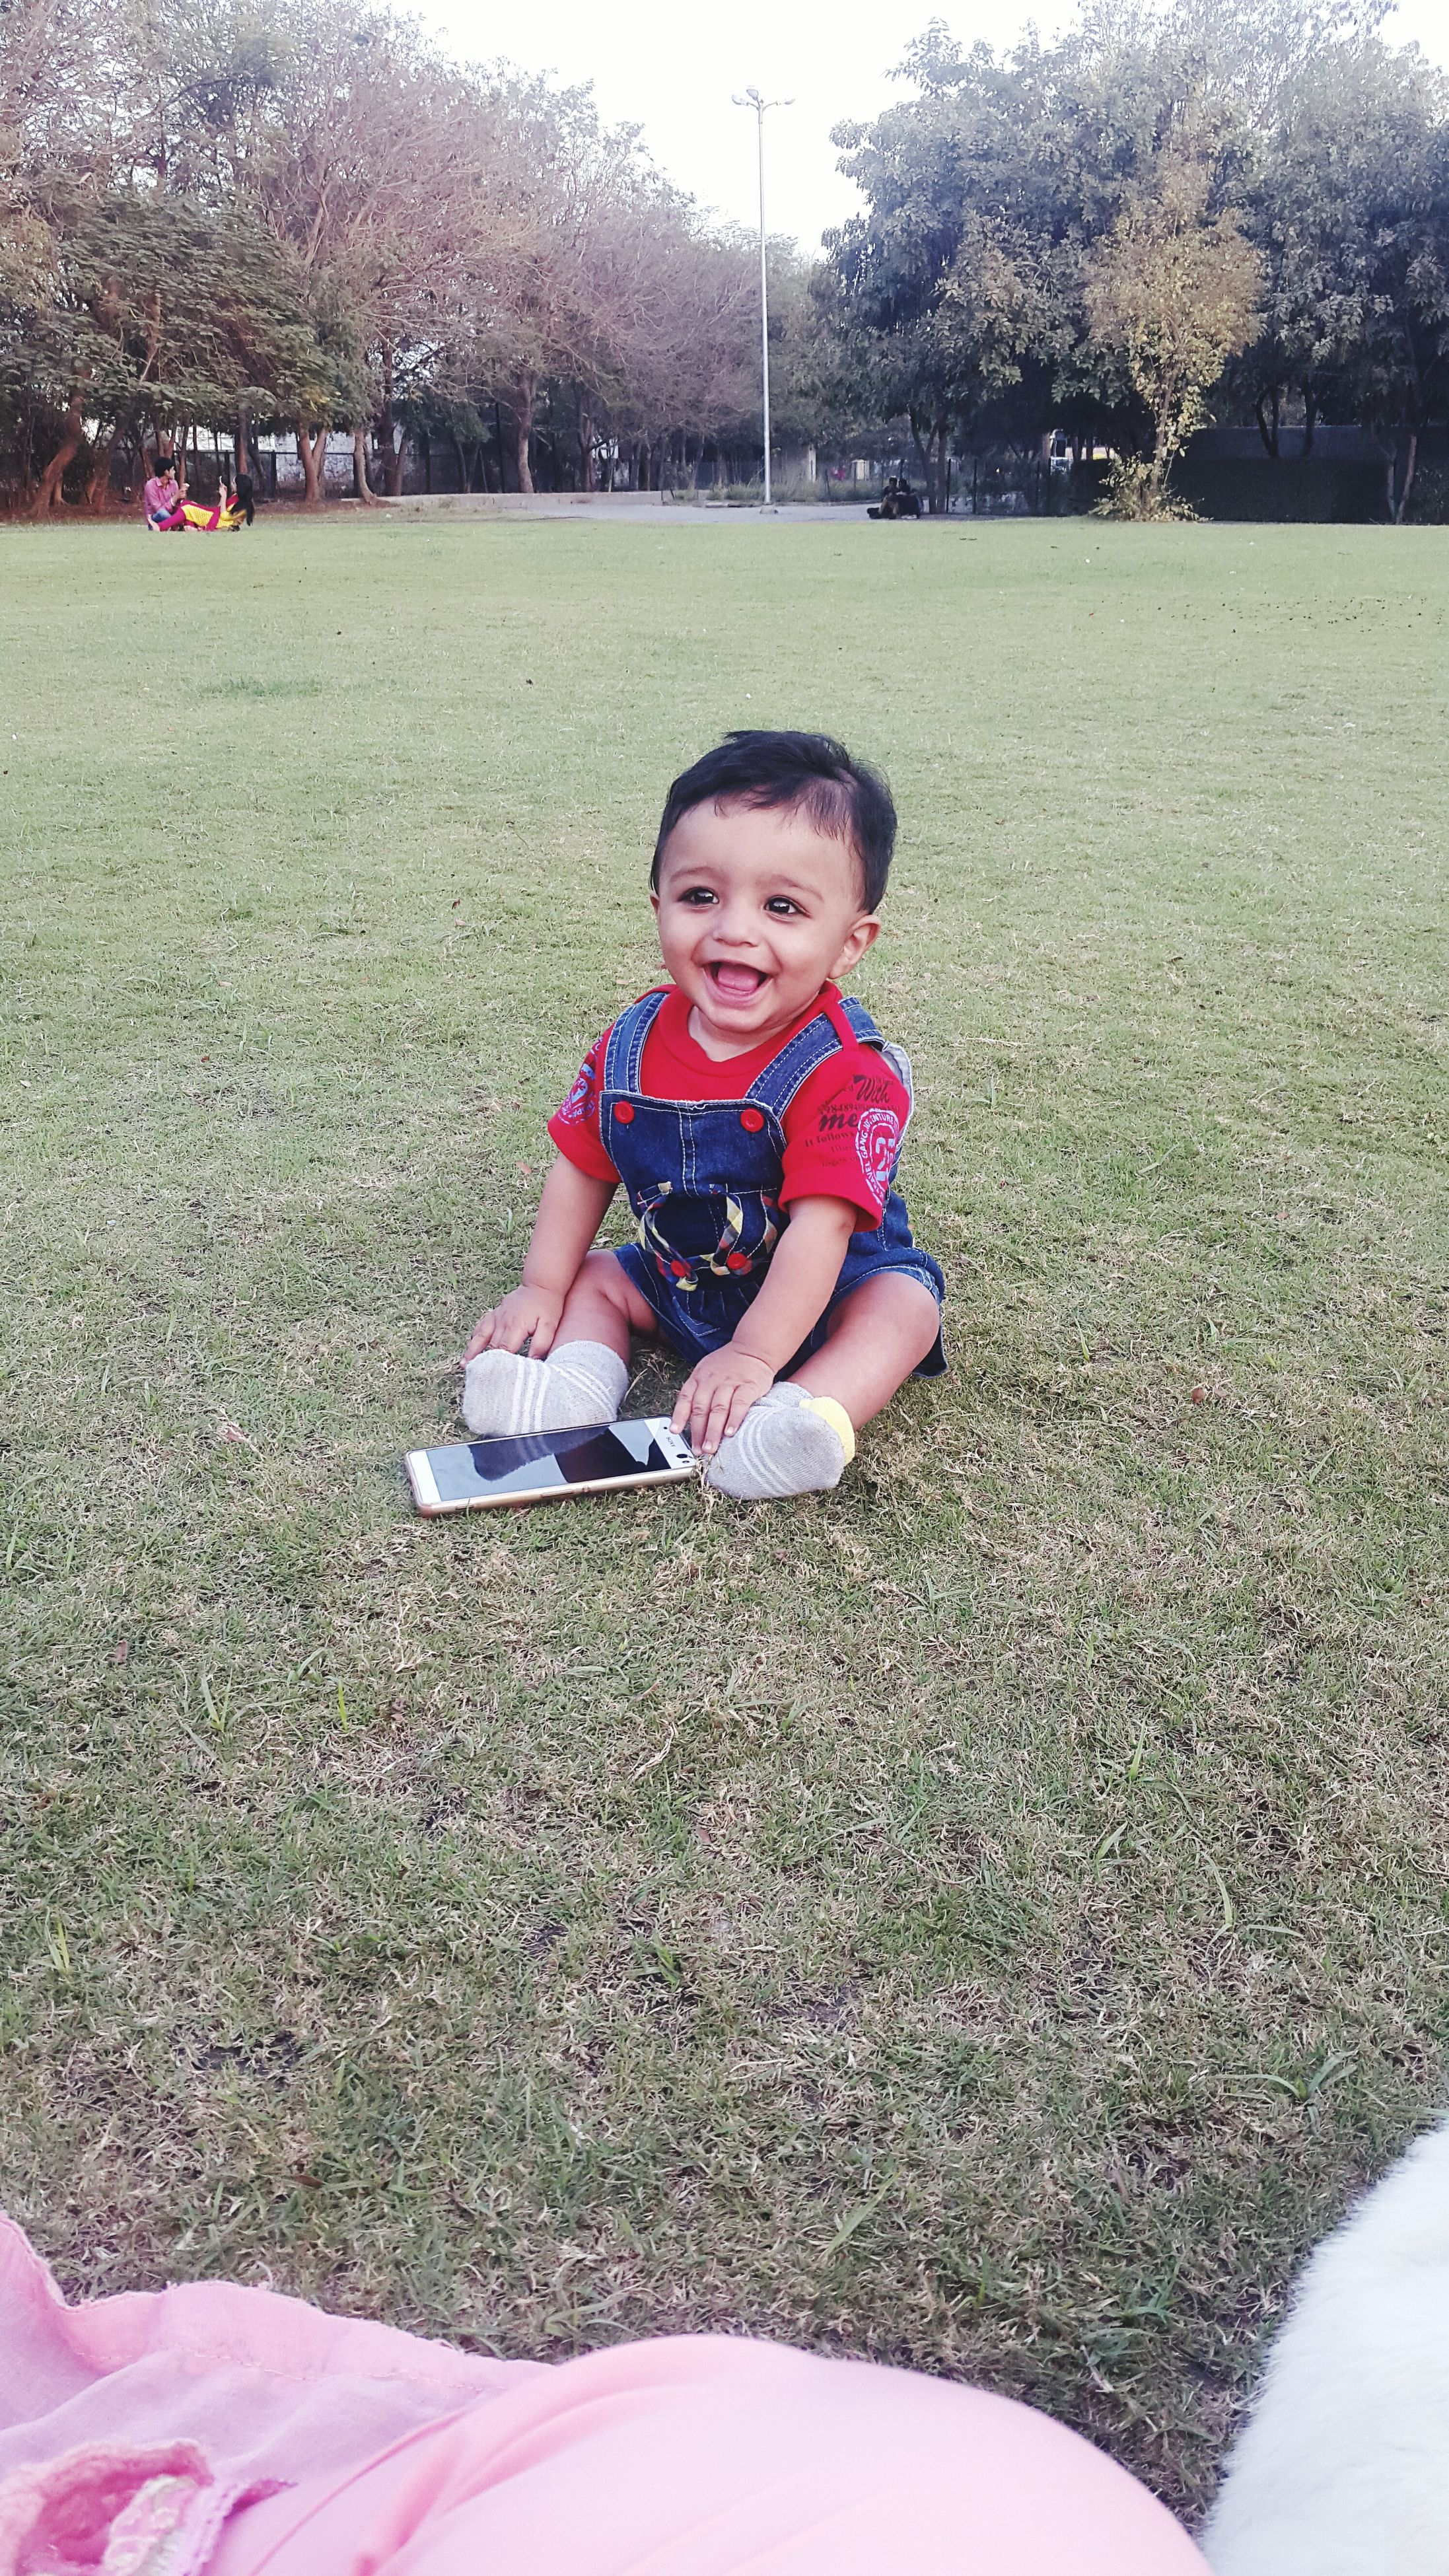 person, looking at camera, portrait, lifestyles, leisure activity, casual clothing, smiling, sitting, childhood, happiness, elementary age, park - man made space, full length, front view, cute, girls, grass, innocence